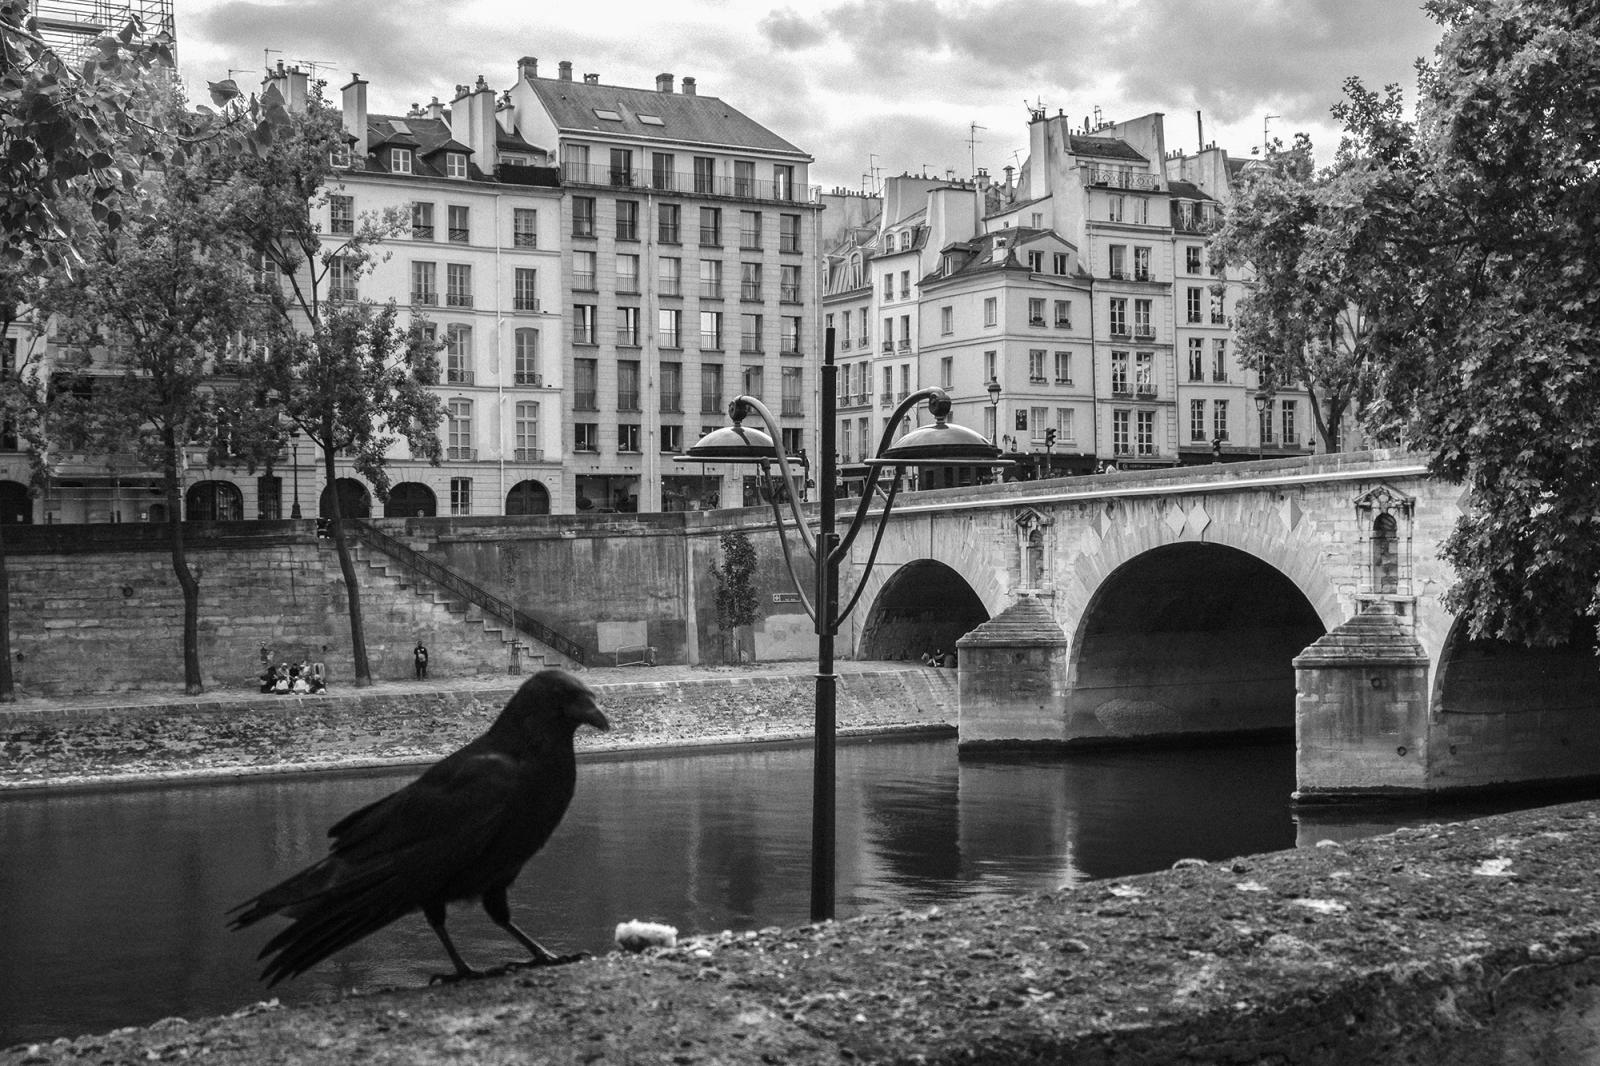 Photography image - Loading Paris_in_my_mind_____Recreating_Memories_Paris_commission_work__mouhamed_moustapha__mousty__pondicherry_to_paris_0.jpg